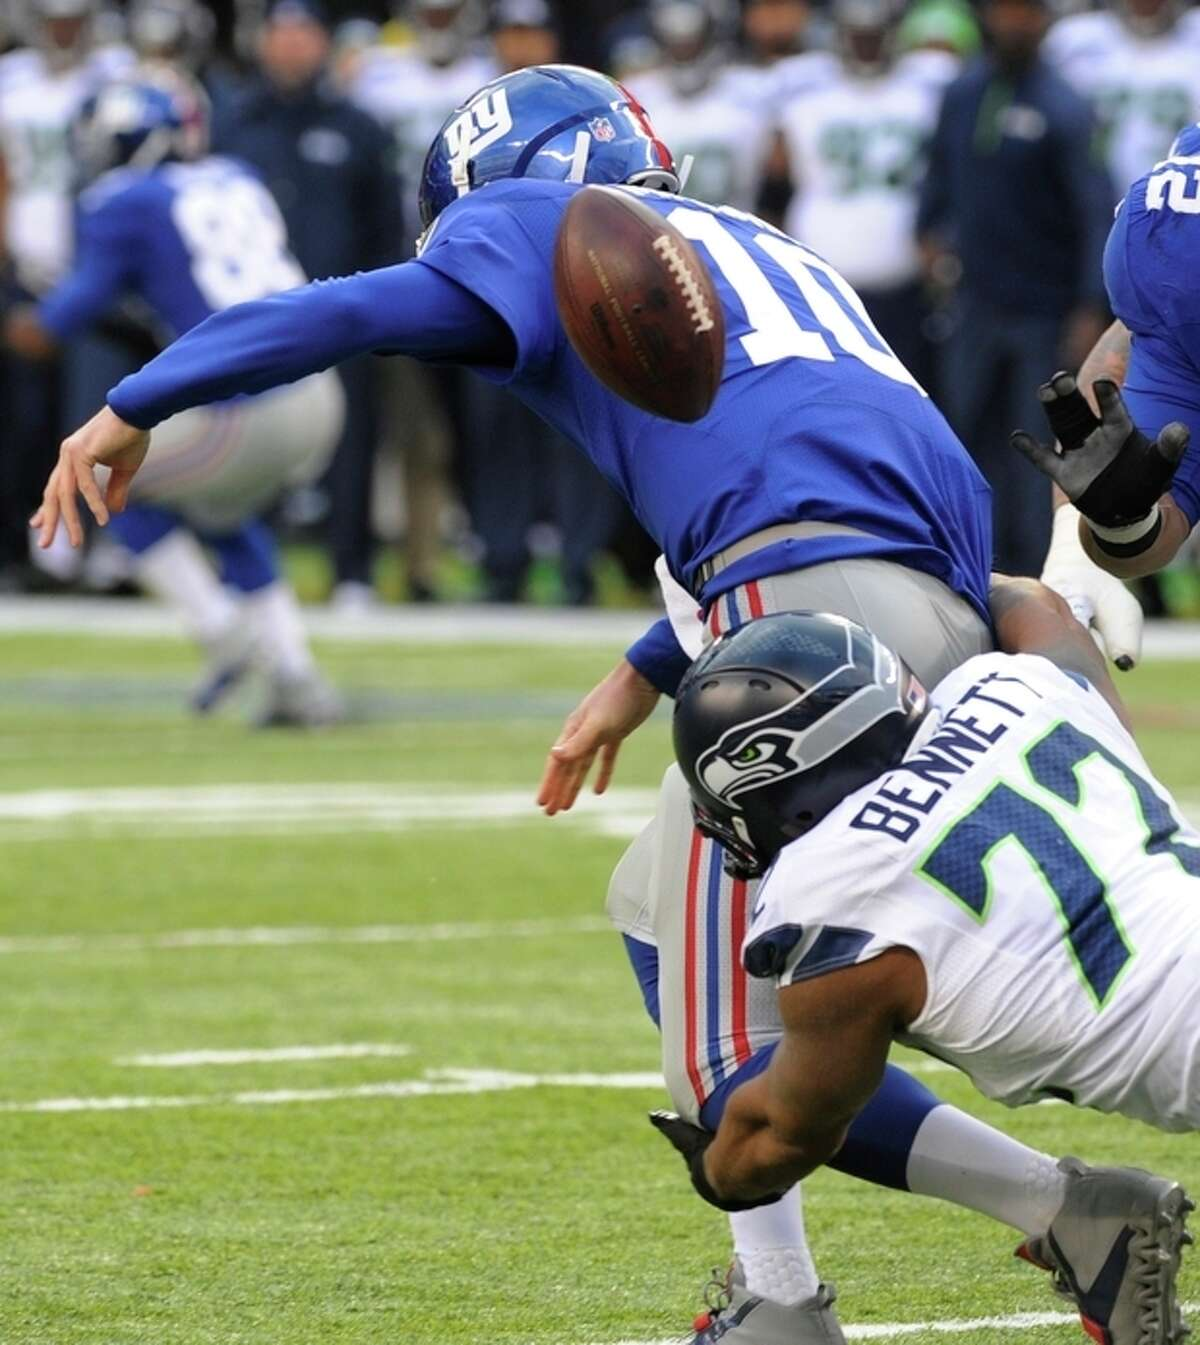 Seattle Seahawks defensive end Michael Bennett (72) forces a fumble by New York Giants quarterback Eli Manning (10) during the second half of an NFL football game on Sunday, Dec. 15, 2013, in East Rutherford, N.J. The Giants recovered the fumble on the play. (AP Photo/Bill Kostroun)